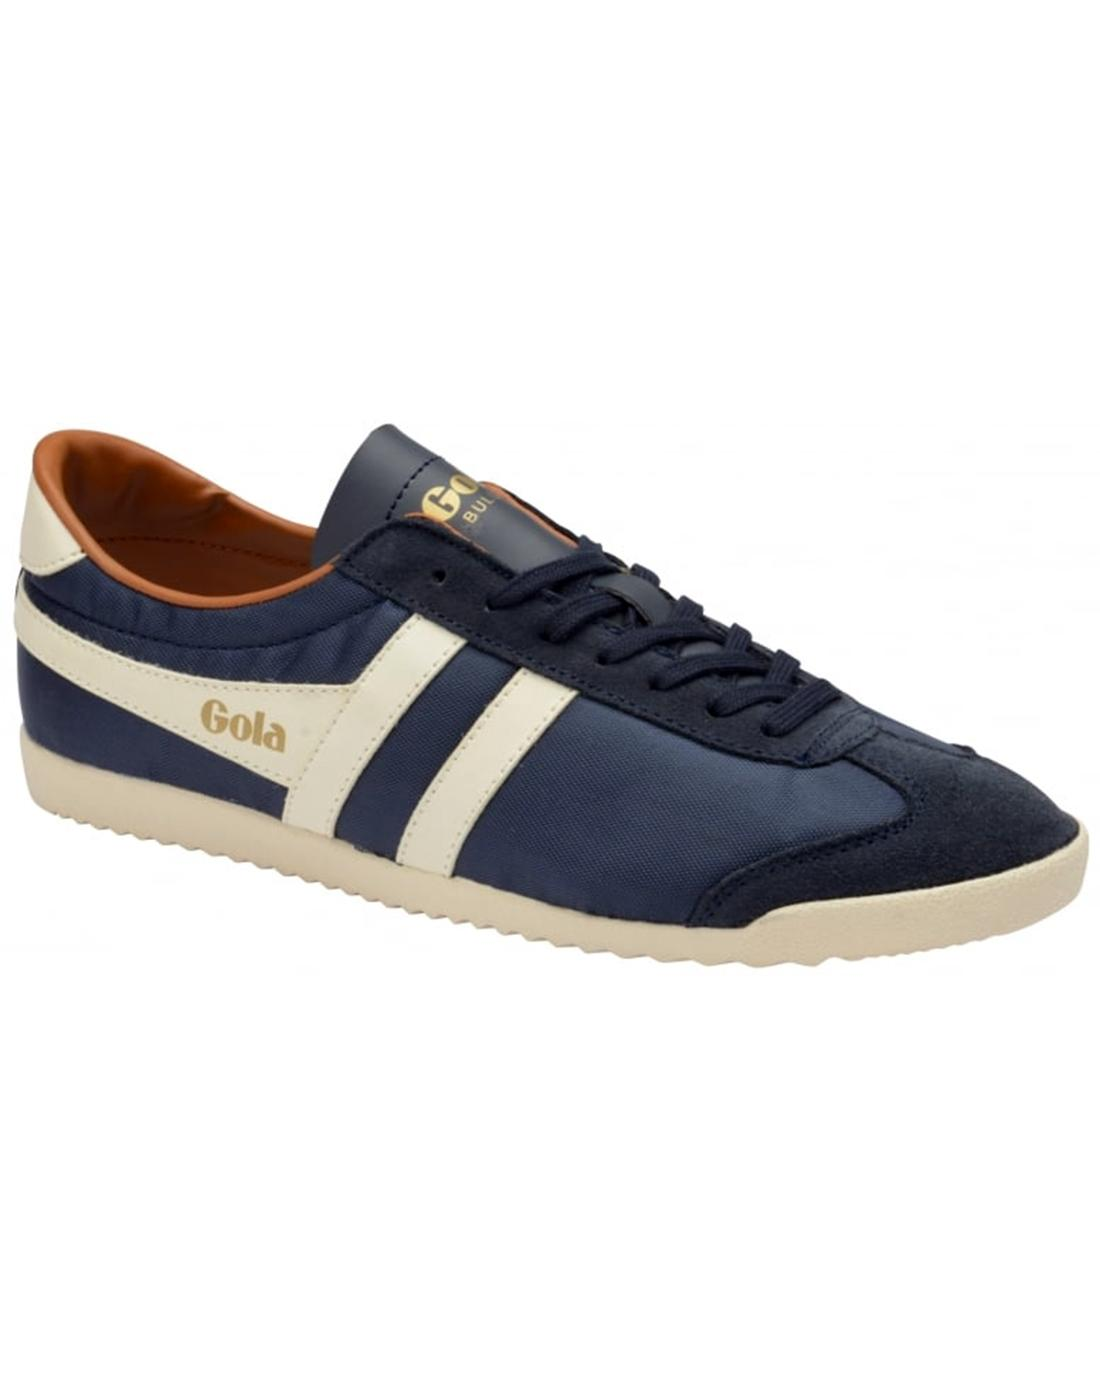 Bullet Nylon GOLA Mens Retro 70s Trainers in Navy